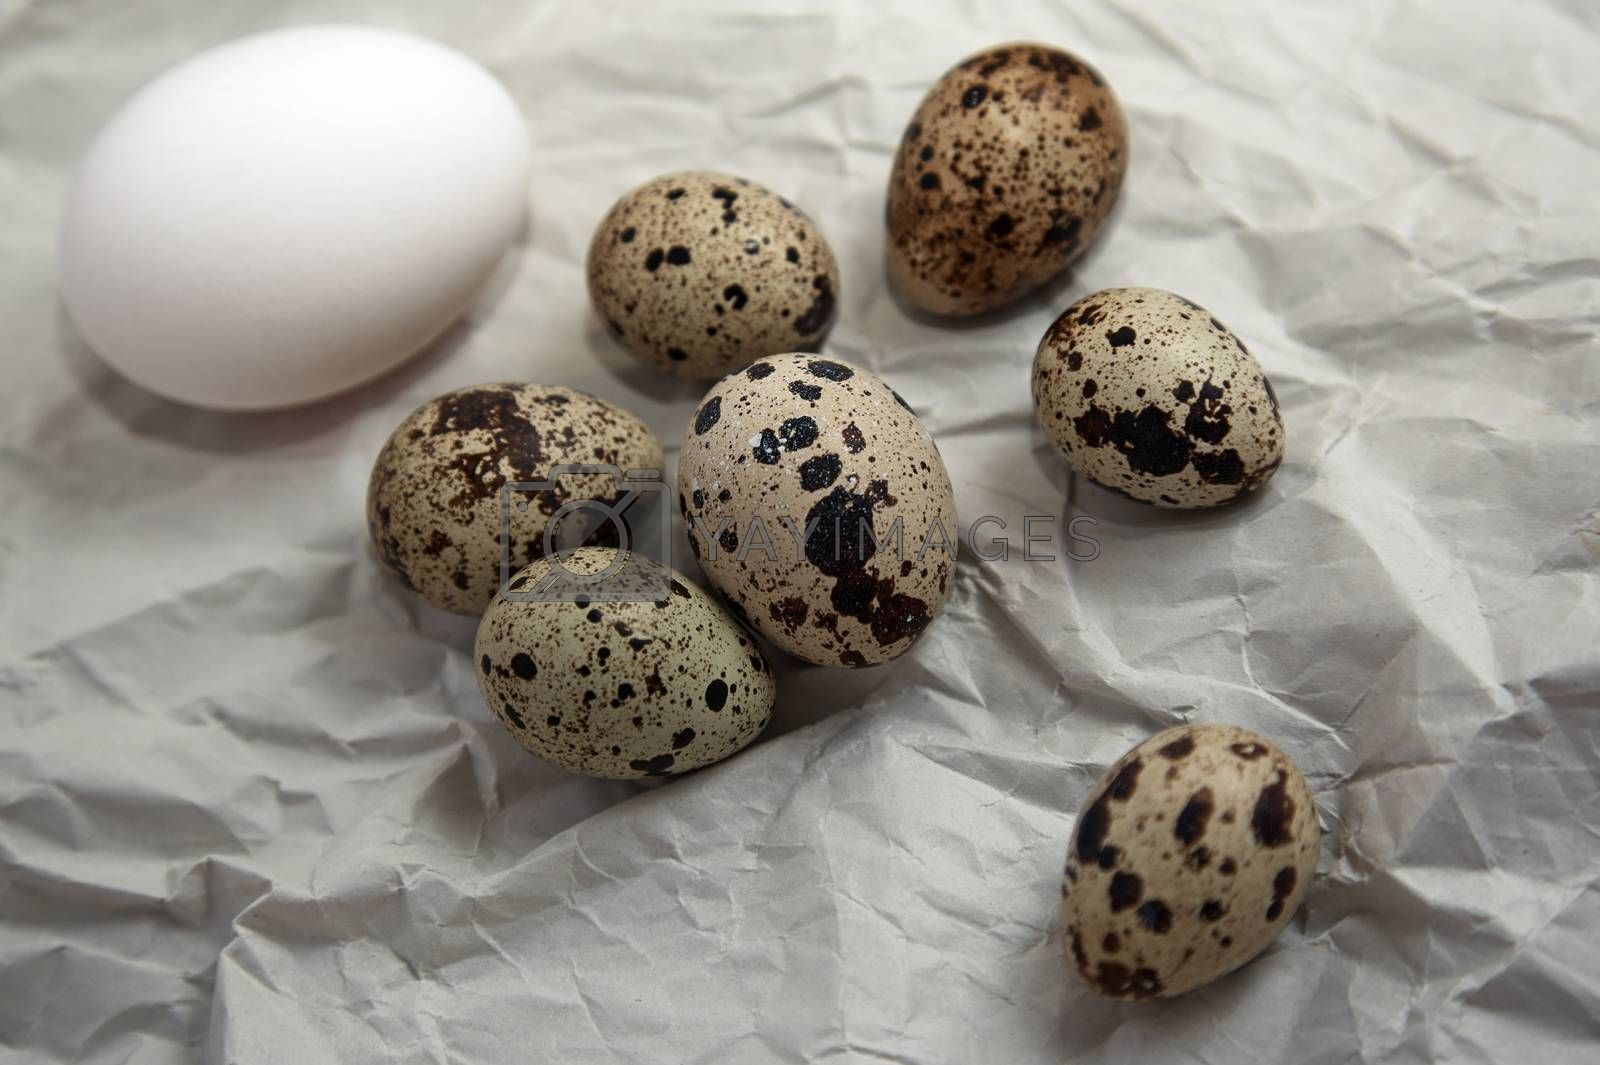 Chicken and quail eggs by Novic